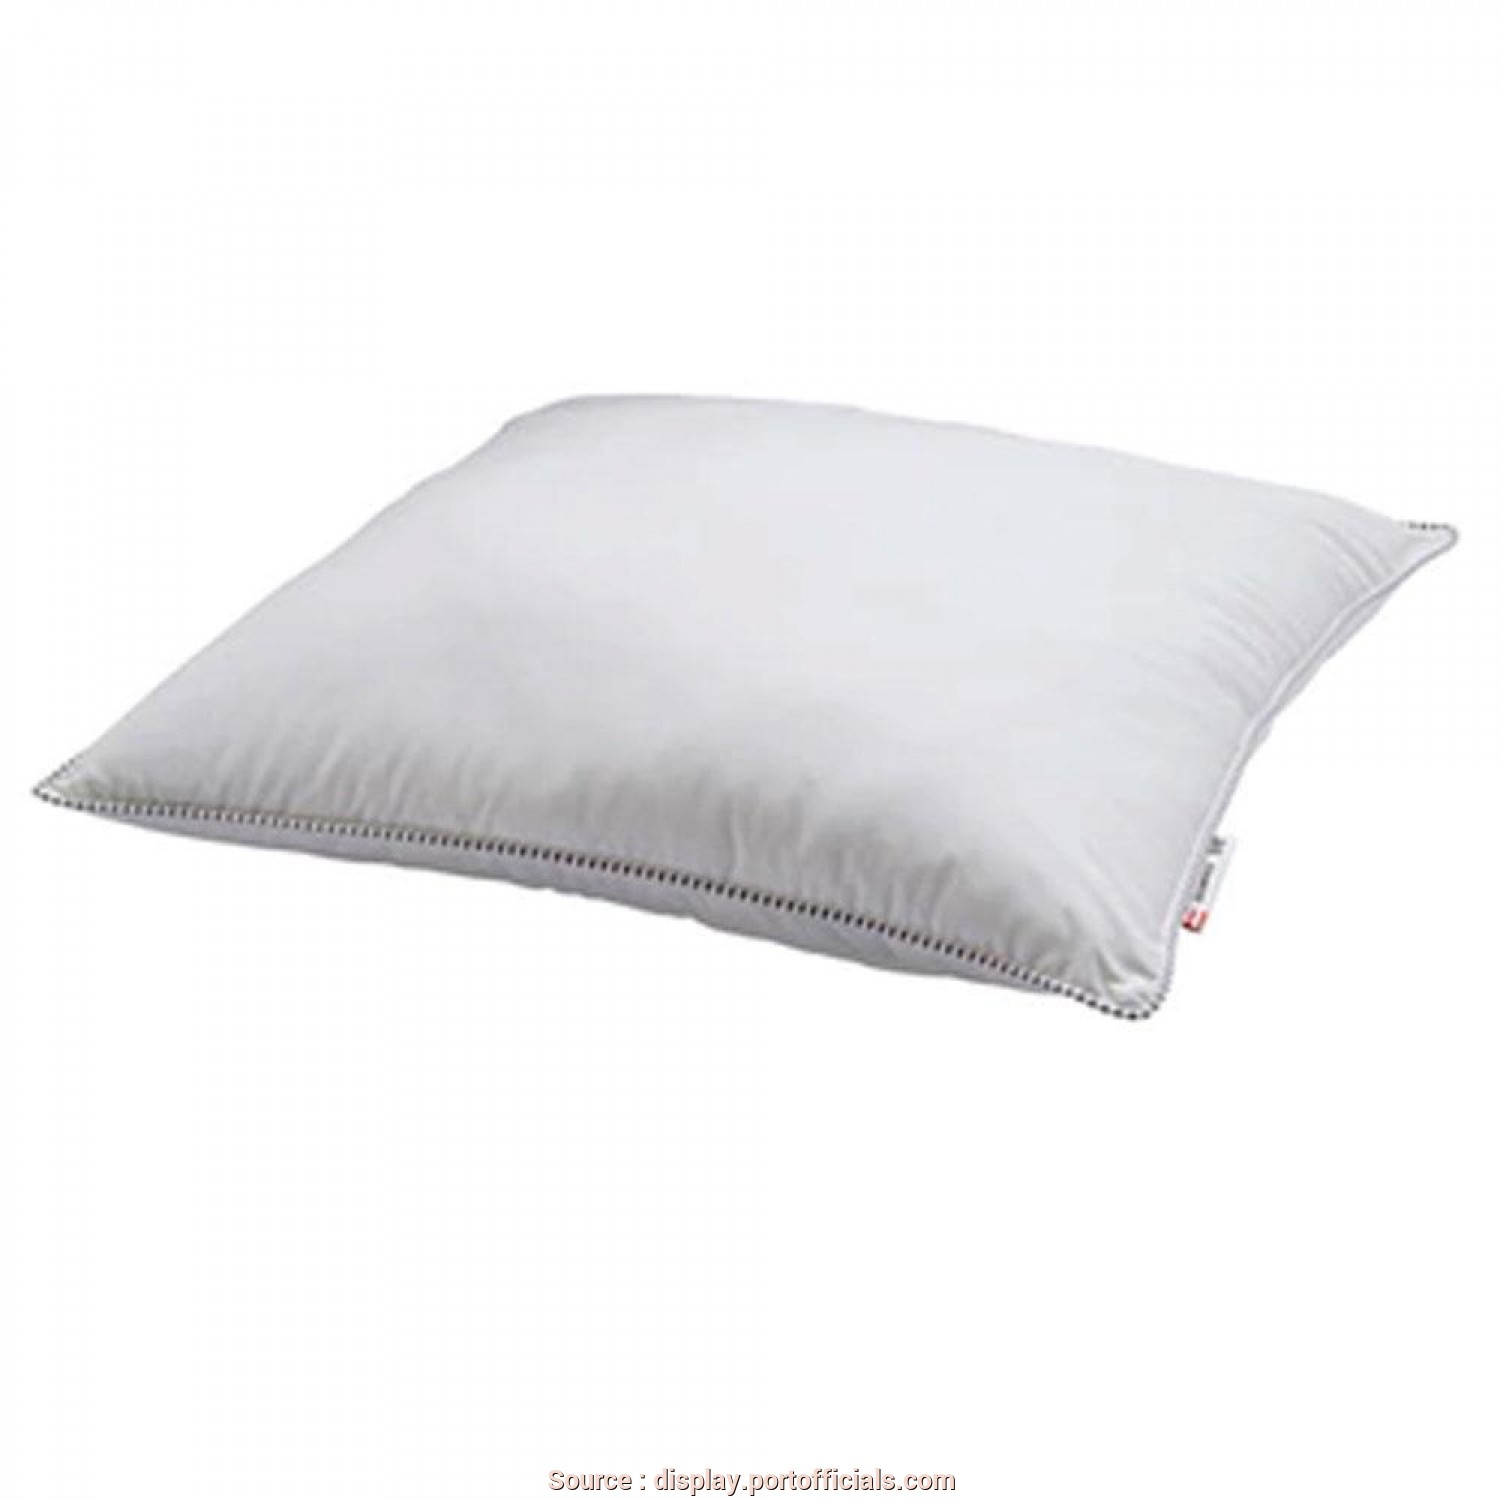 Cuscino Ikea Gosa Hassel, Sbalorditivo Best Ikea Pillow, Side Sleeper, 28 Images, Popular Side Memory